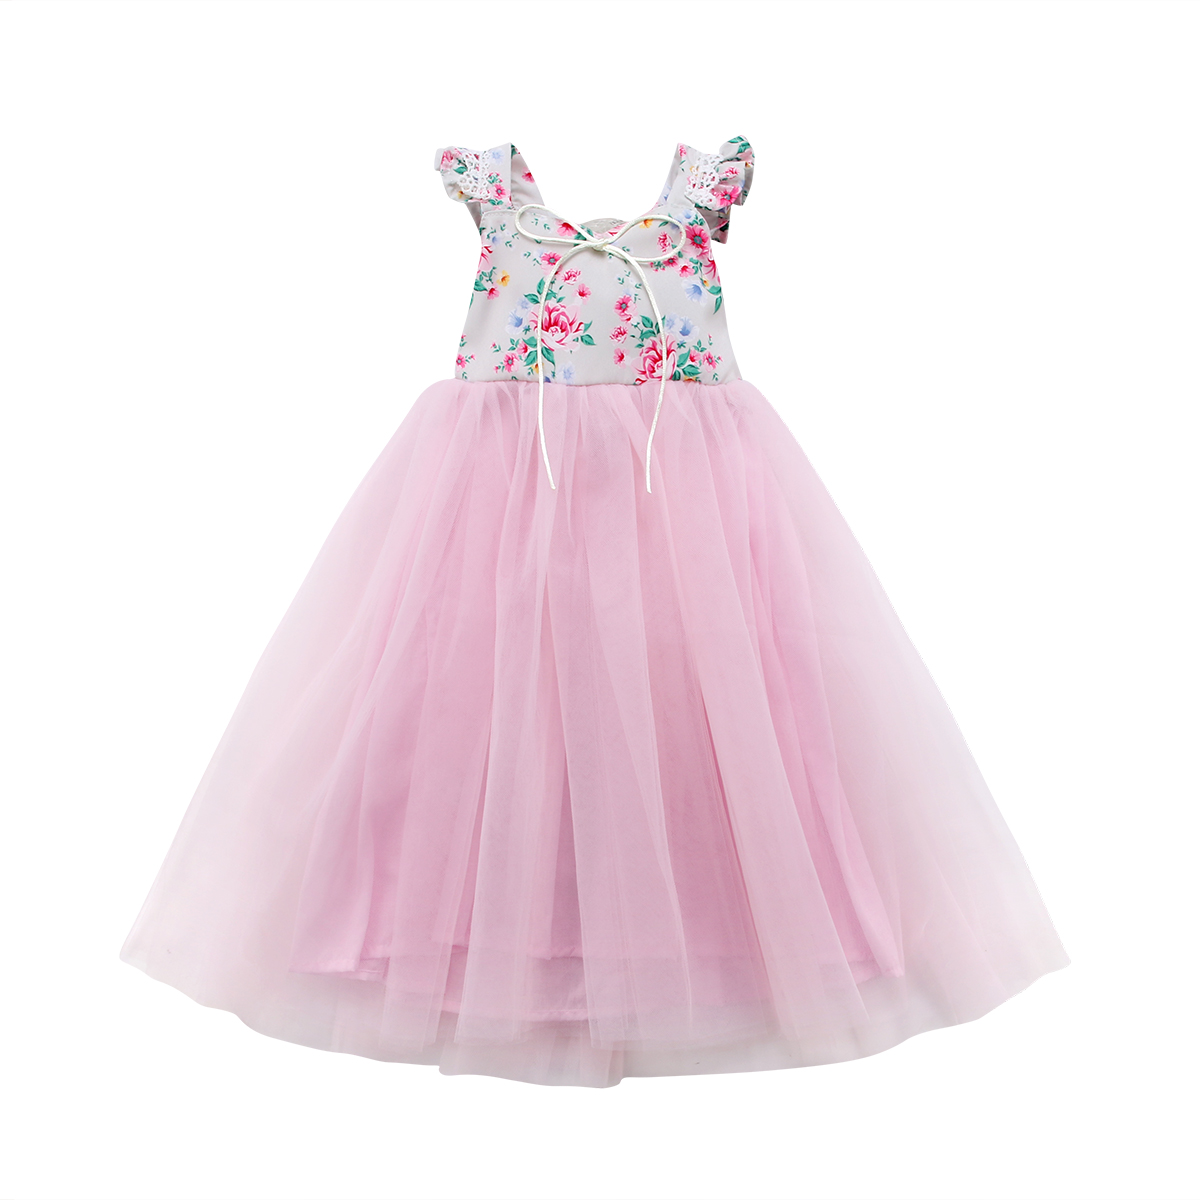 Floral Kids Baby Girls Sleeveless Dress  Princess Pageant Sundress Outfit 1-7Y